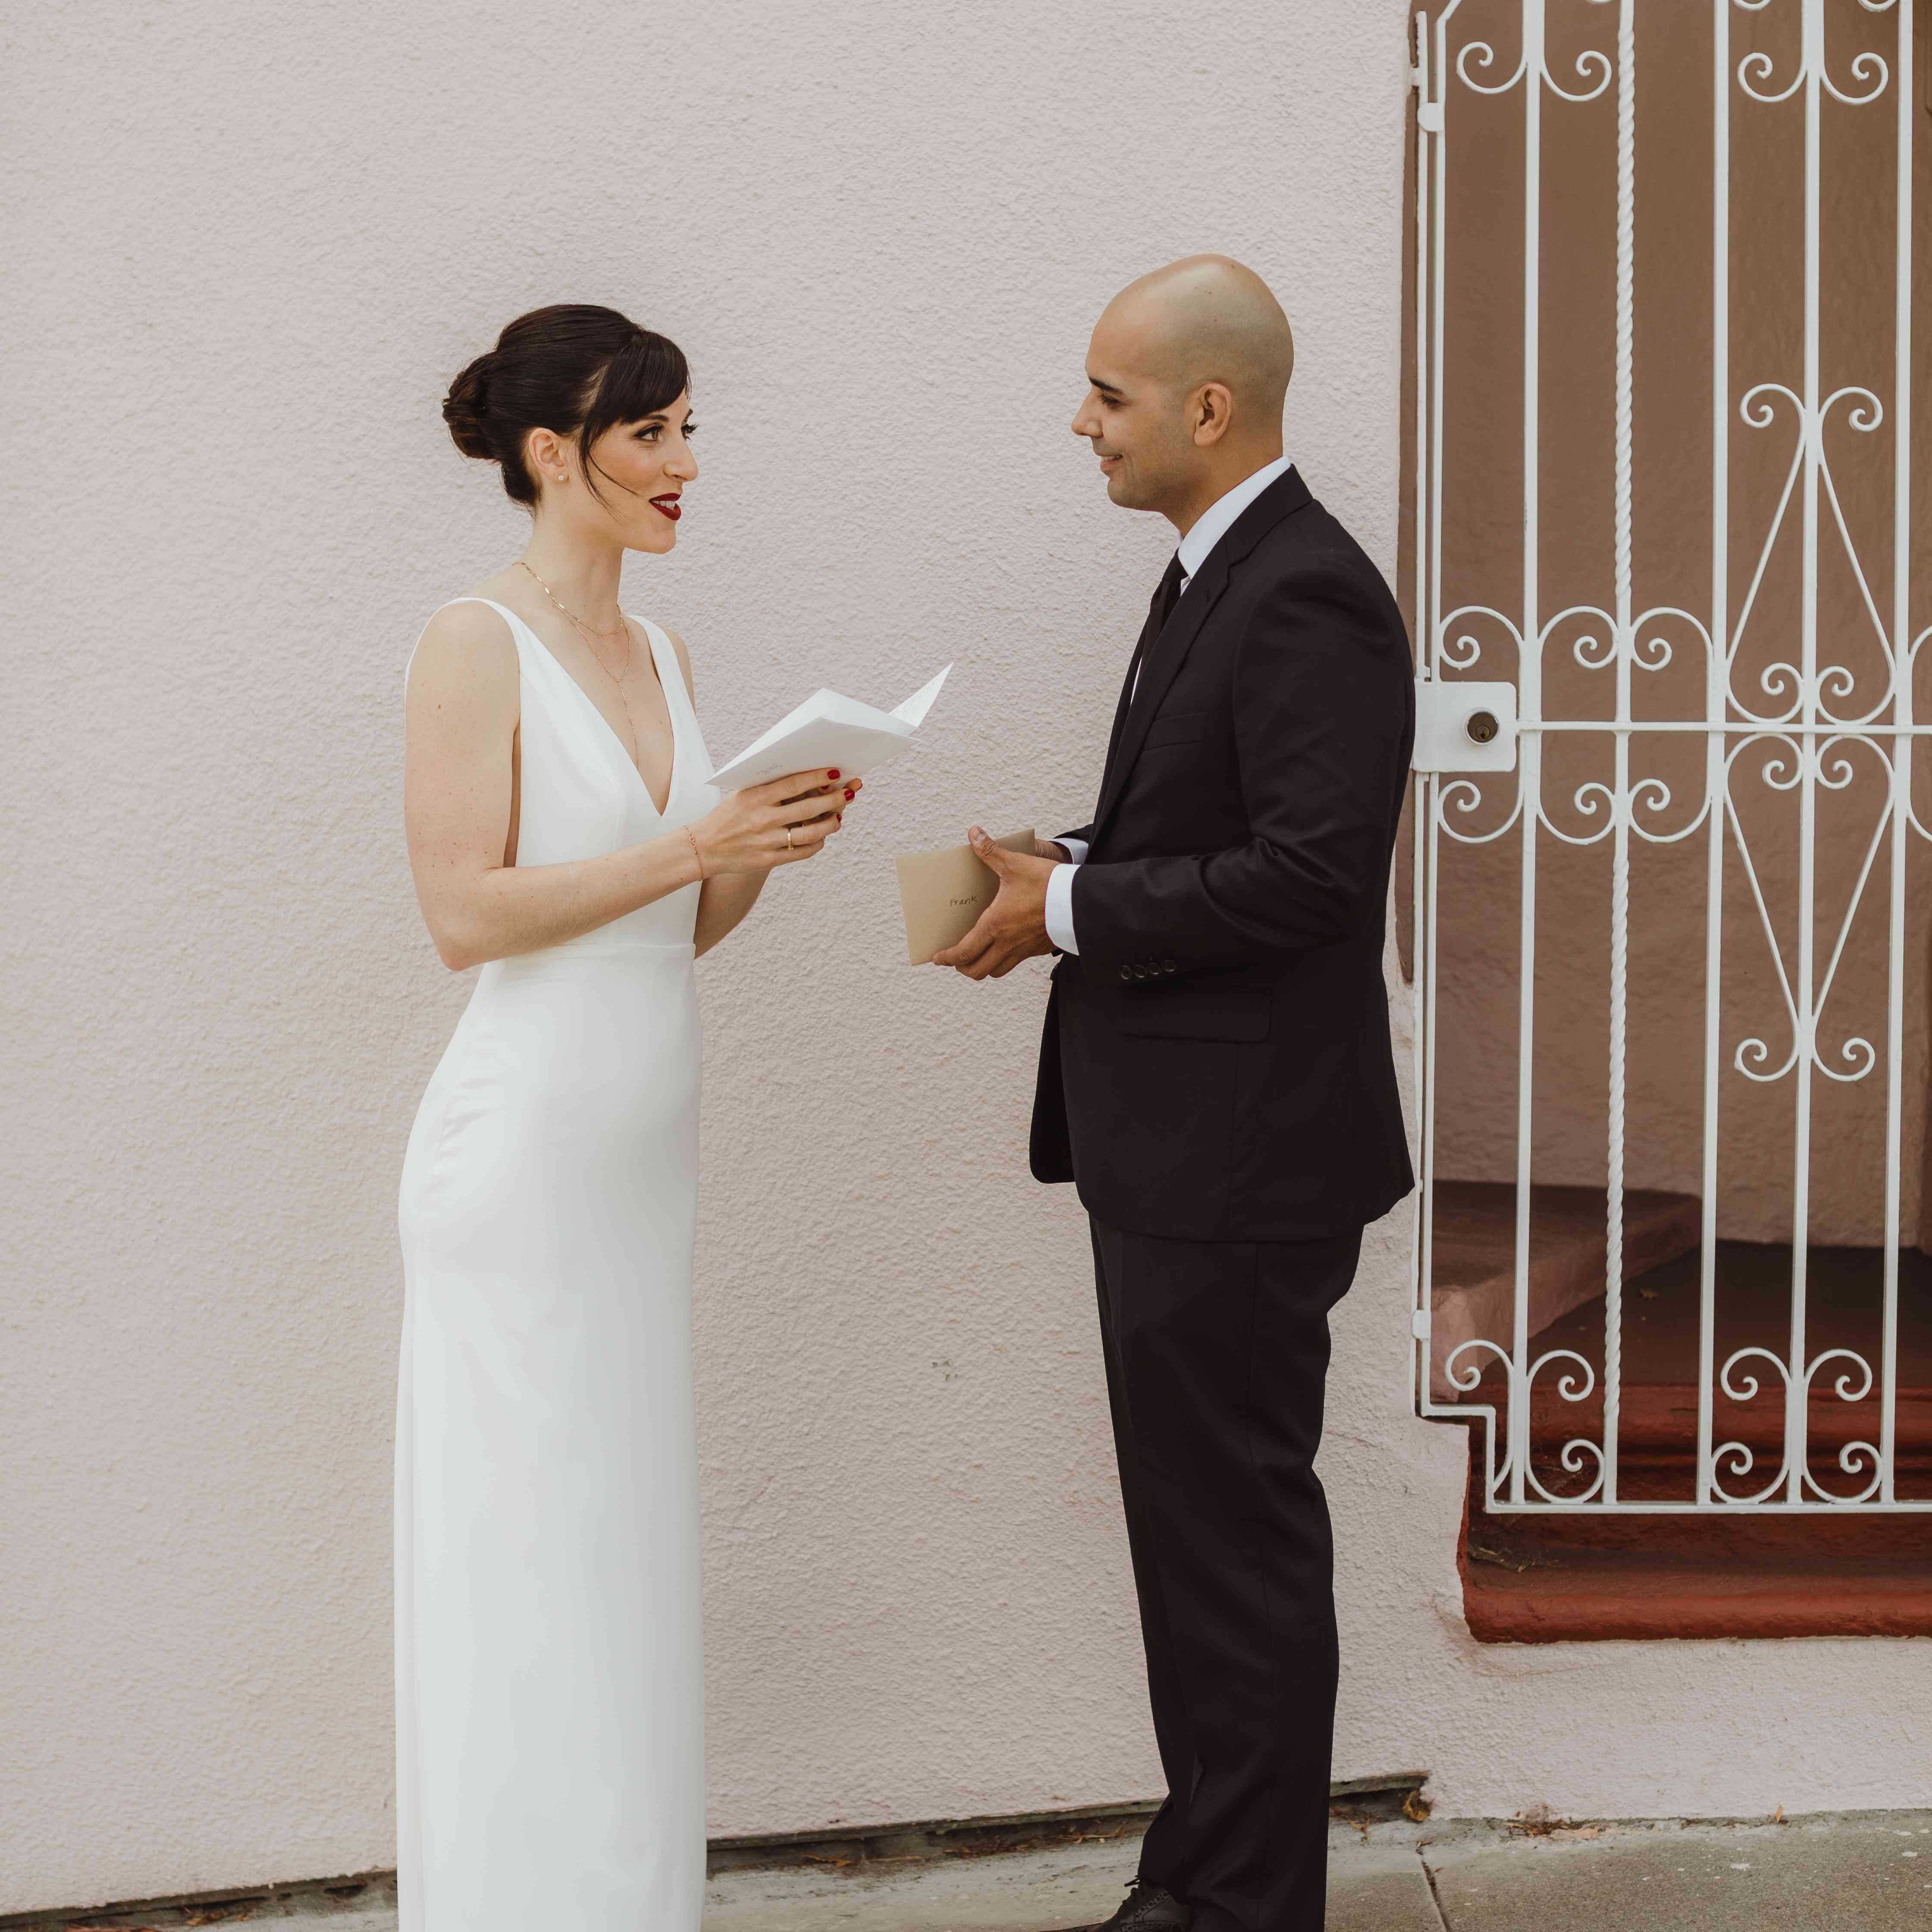 exchanging love letters before ceremony